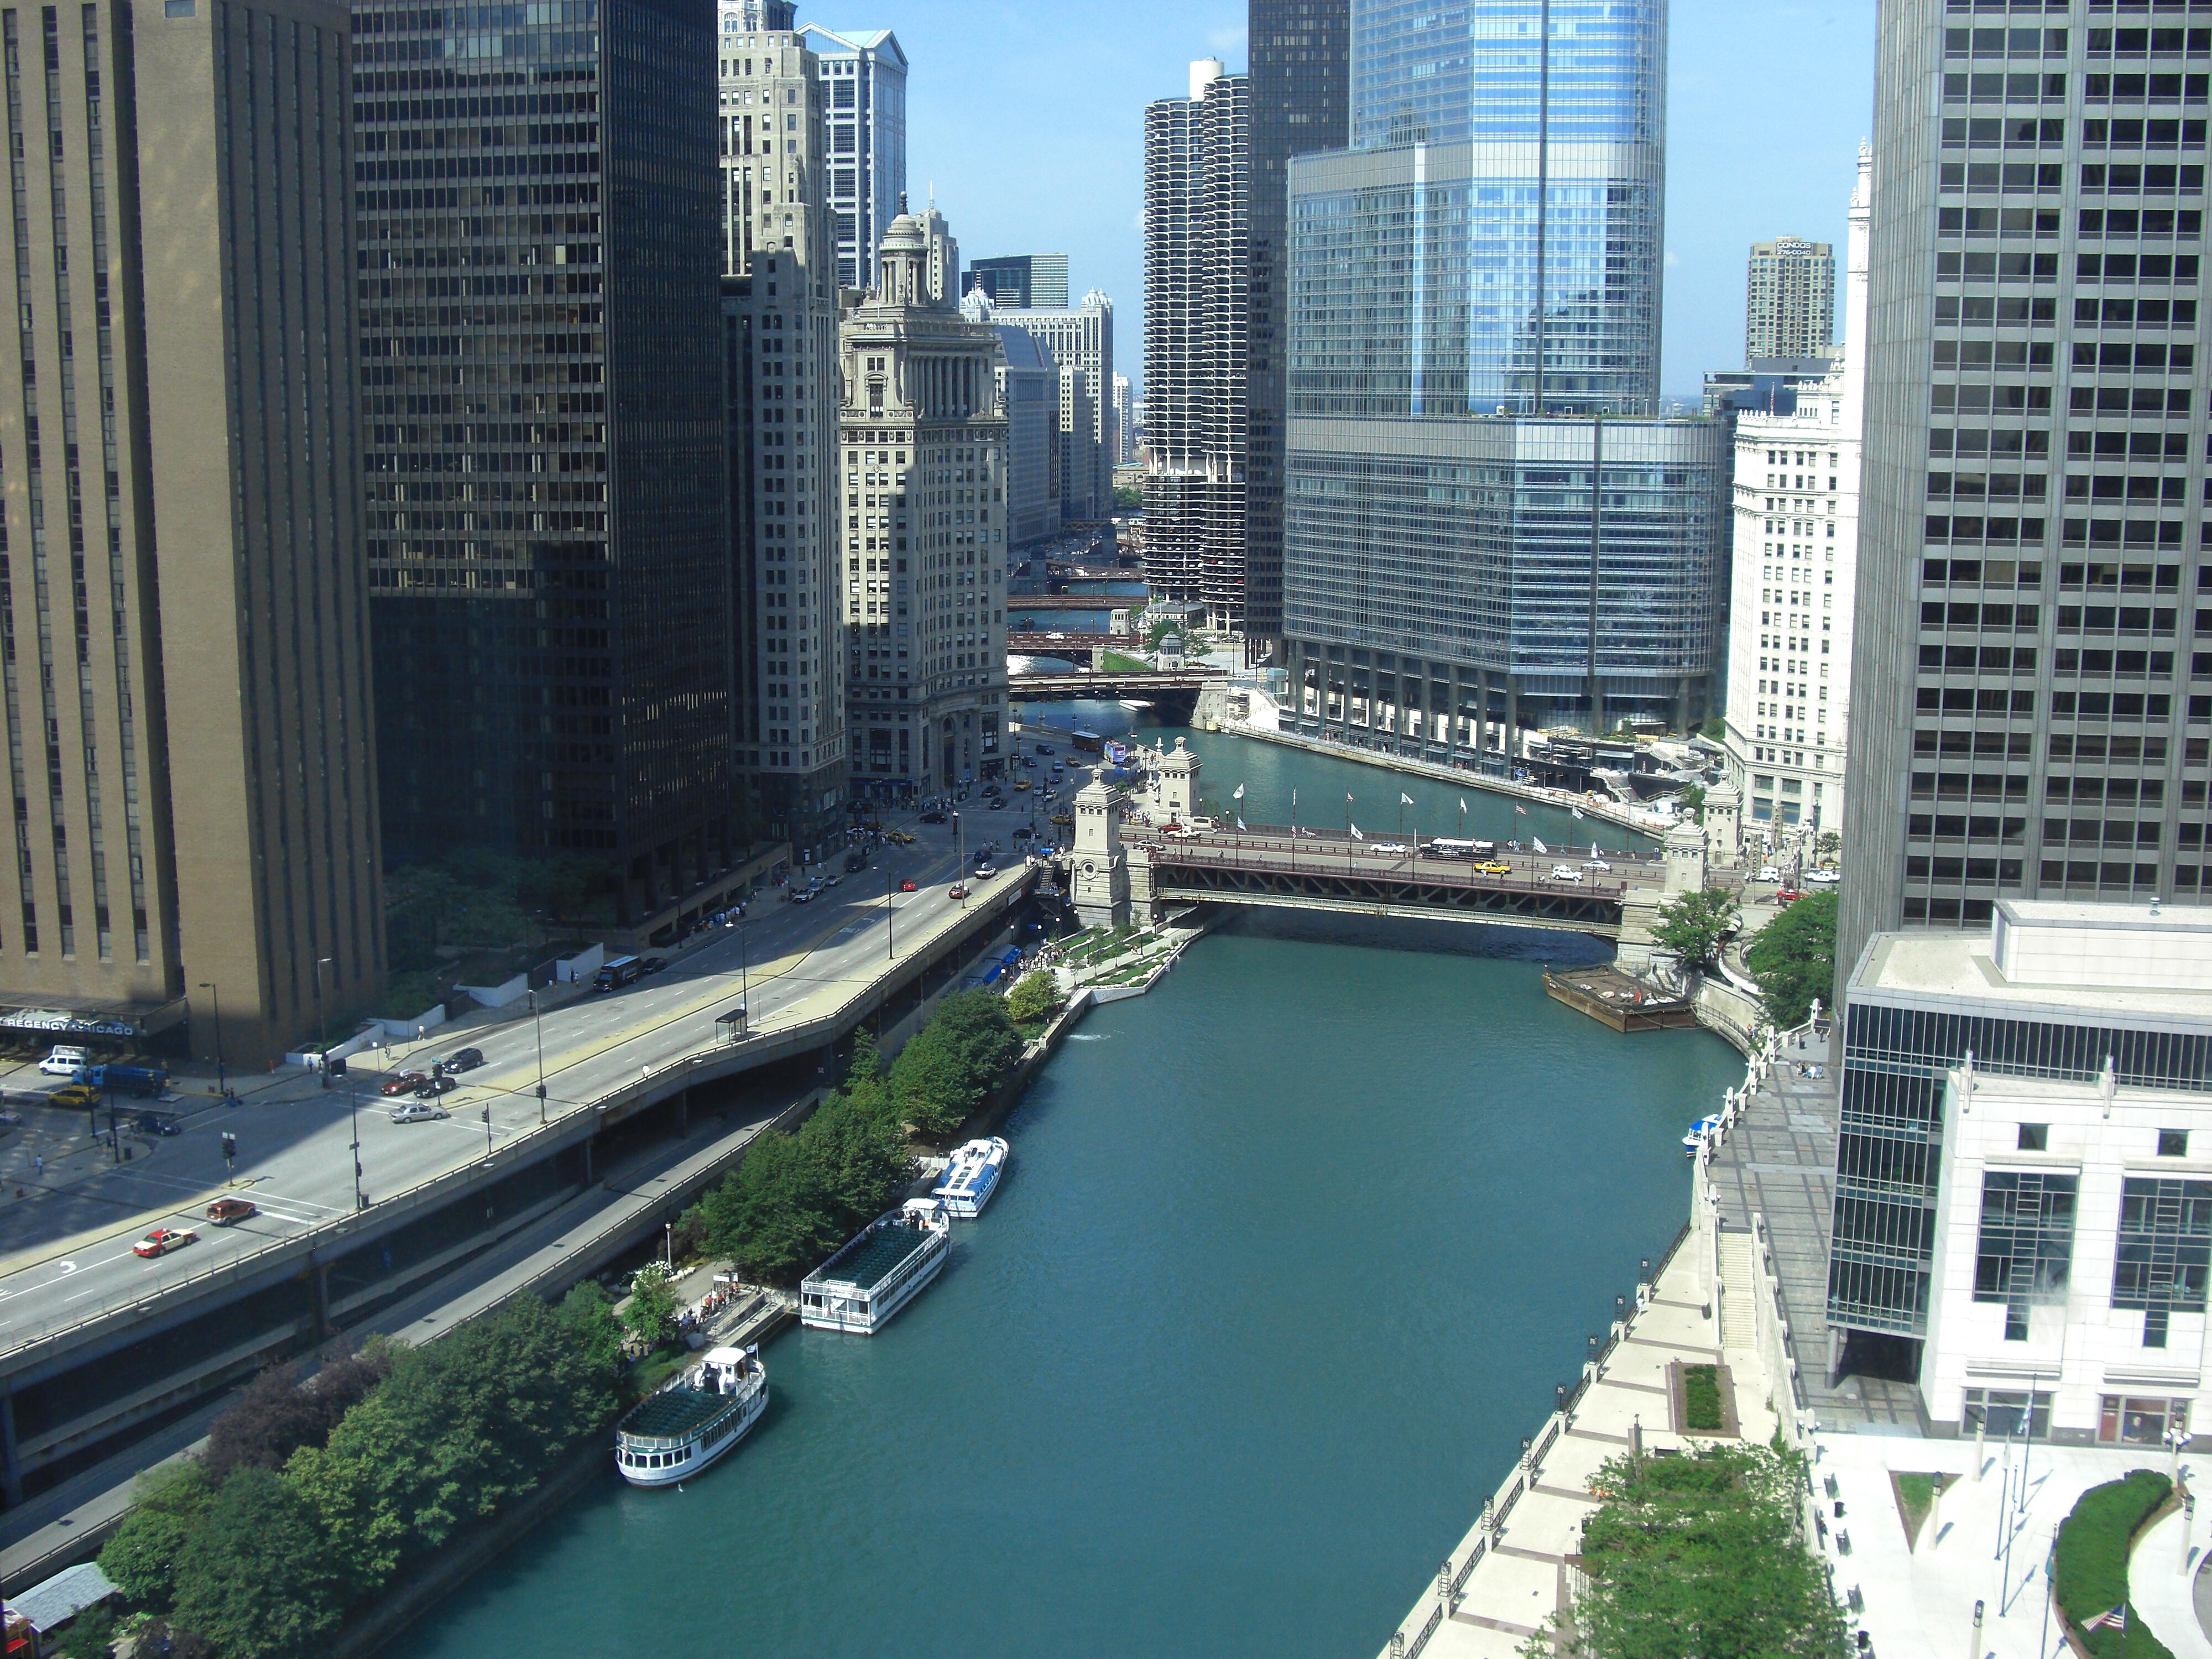 Our view from the 28th floor Sheraton Chicago